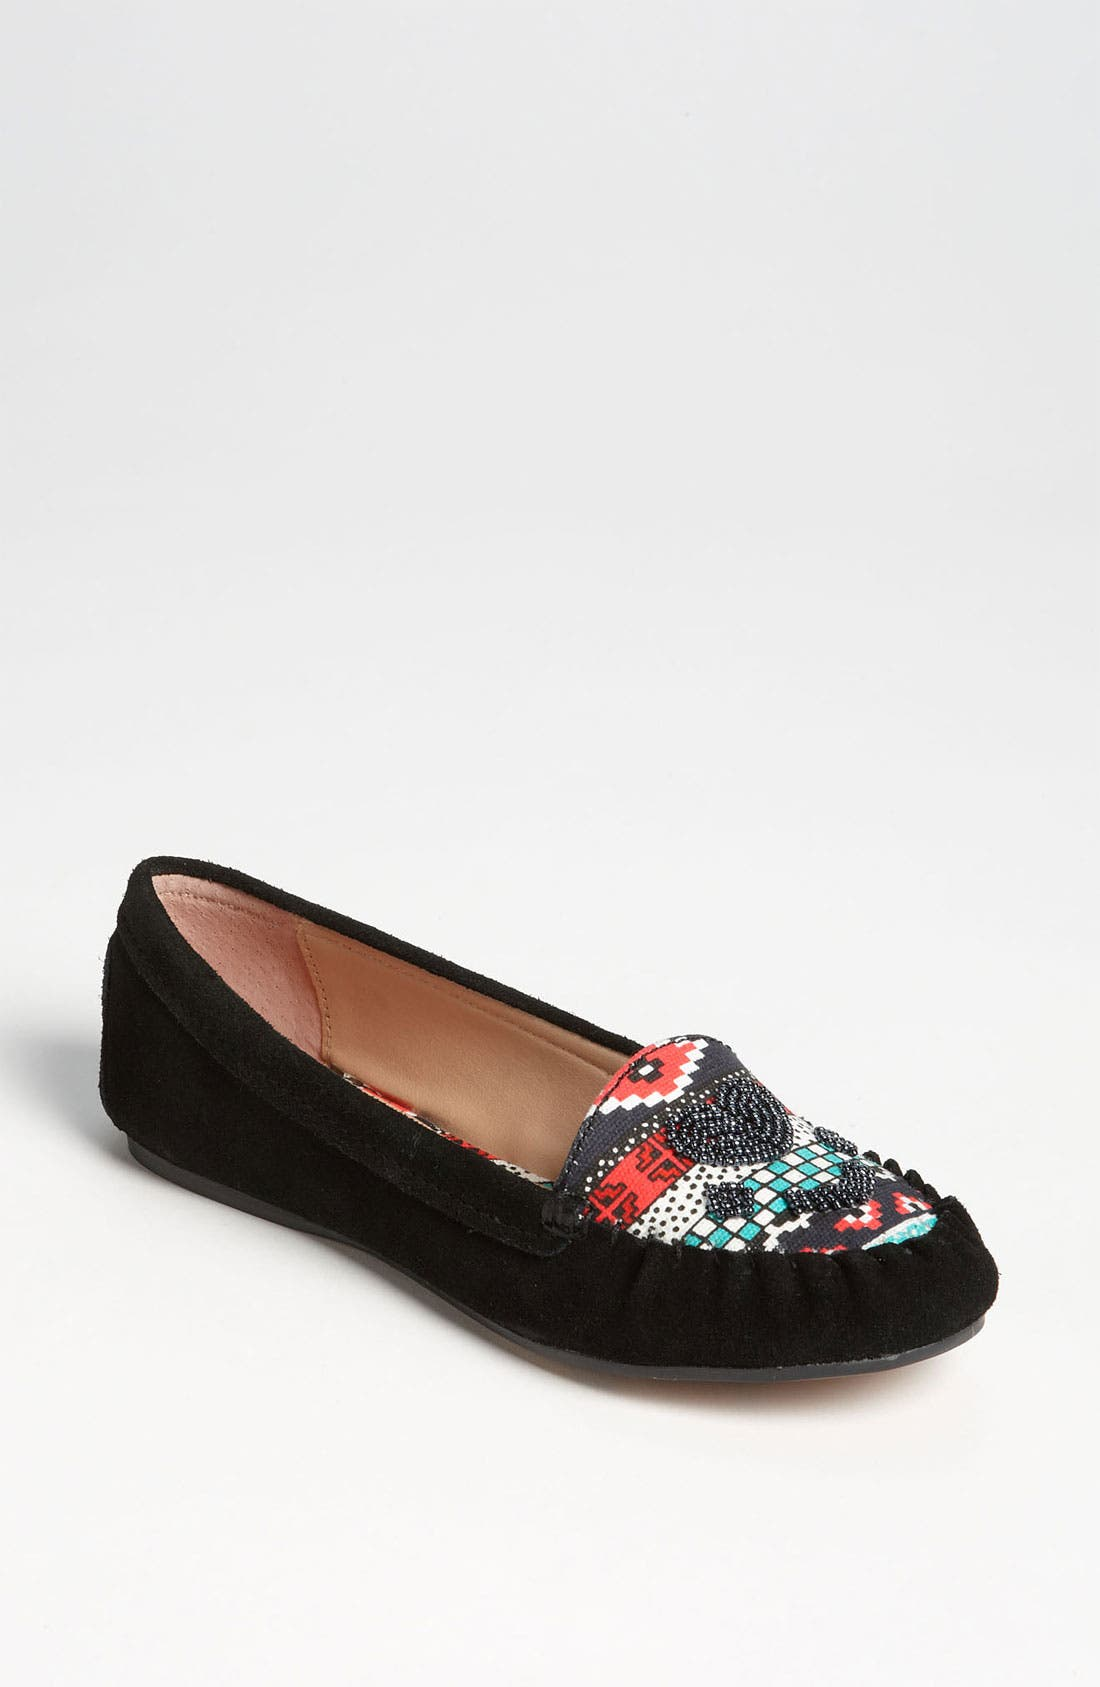 Alternate Image 1 Selected - Betsey Johnson 'Mayhemm' Flat